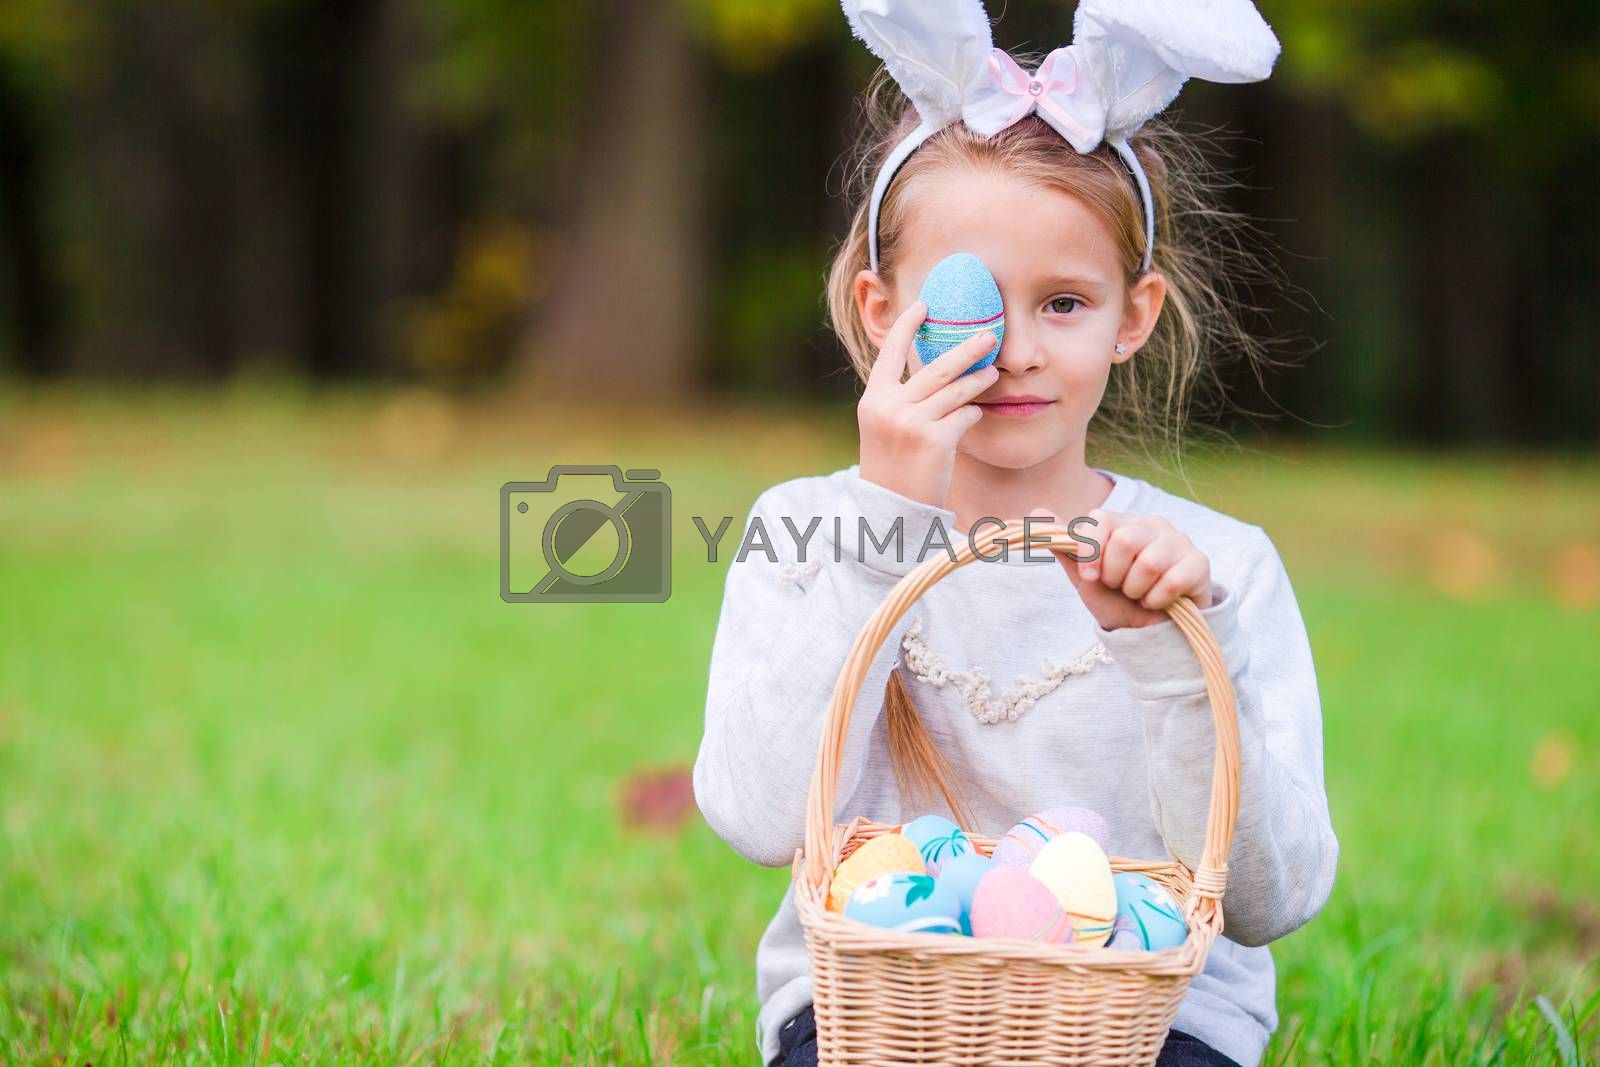 Adorable girl wearing bunny ears holding basket with Easter eggs